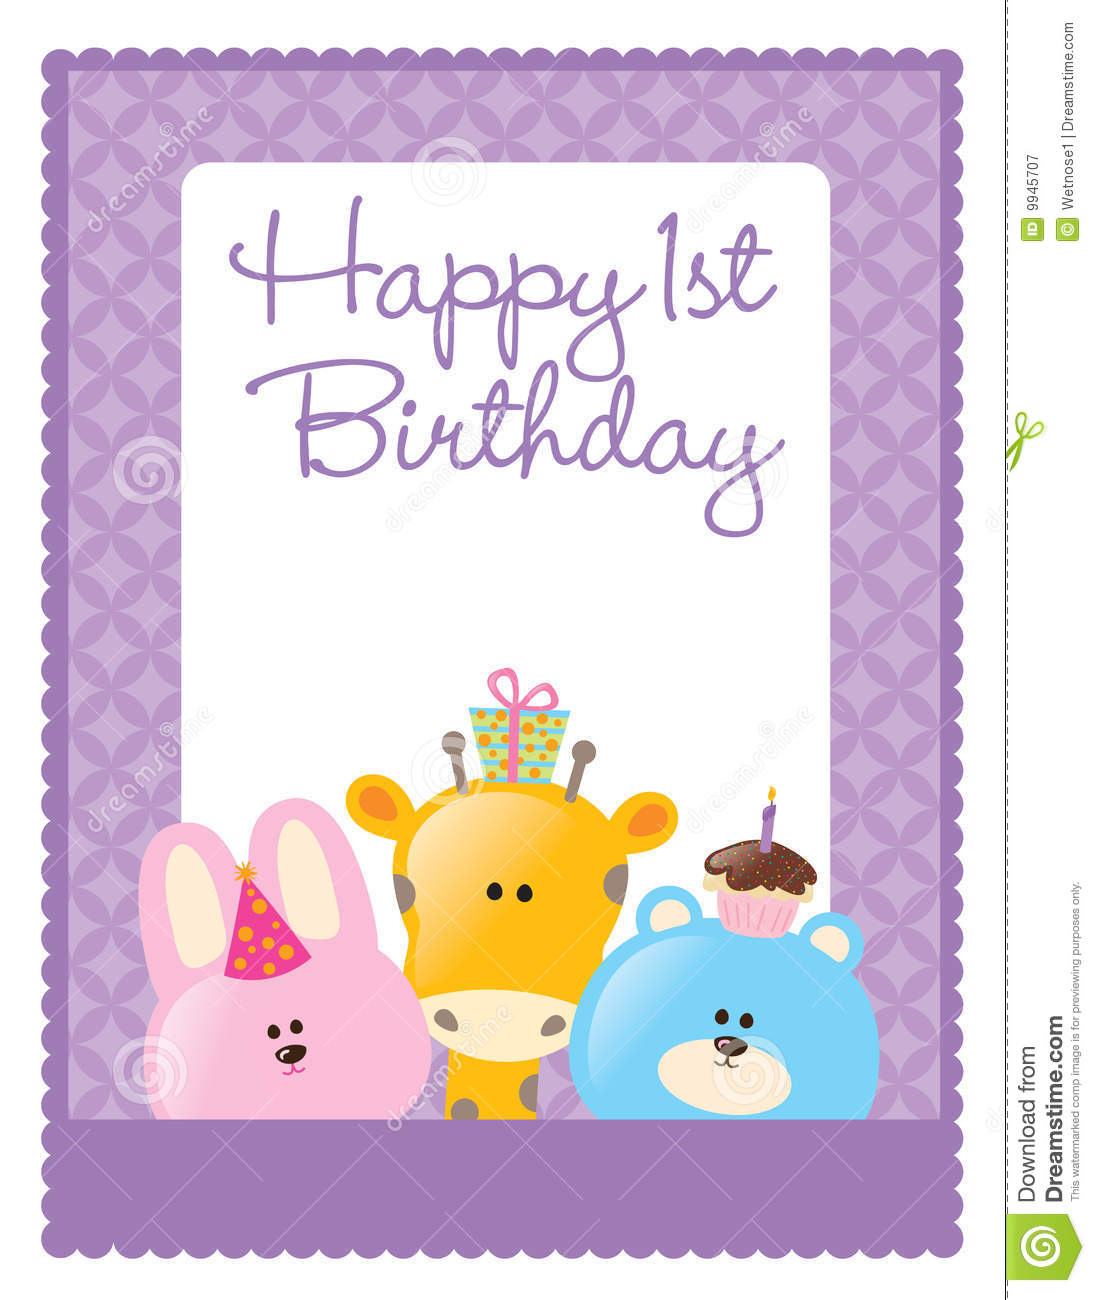 free birthday poster template ; birthday-flyer-poster-template-9945707